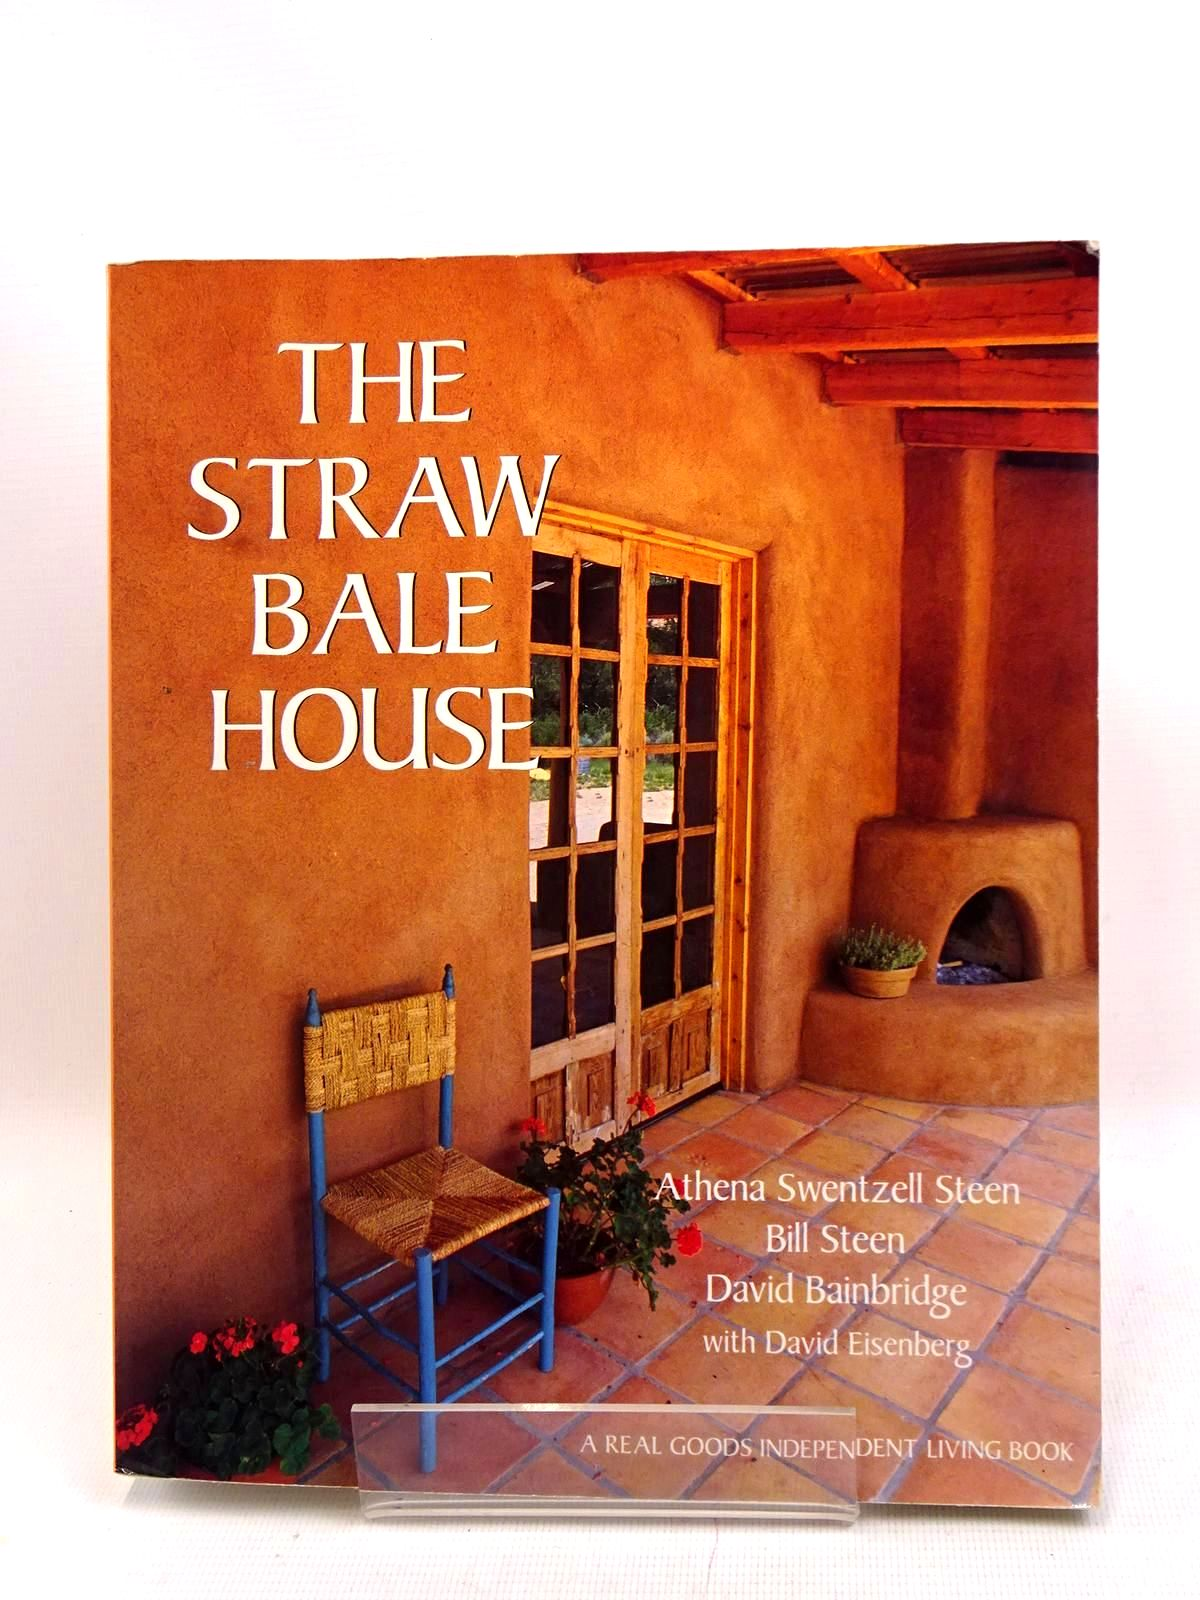 Photo of THE STRAW BALE HOUSE written by Steen, Athena Swentzell Steen, Bill Bainbridge, David Eisenberg, David published by Chelsea Green Publishing Company (STOCK CODE: 1317558)  for sale by Stella & Rose's Books